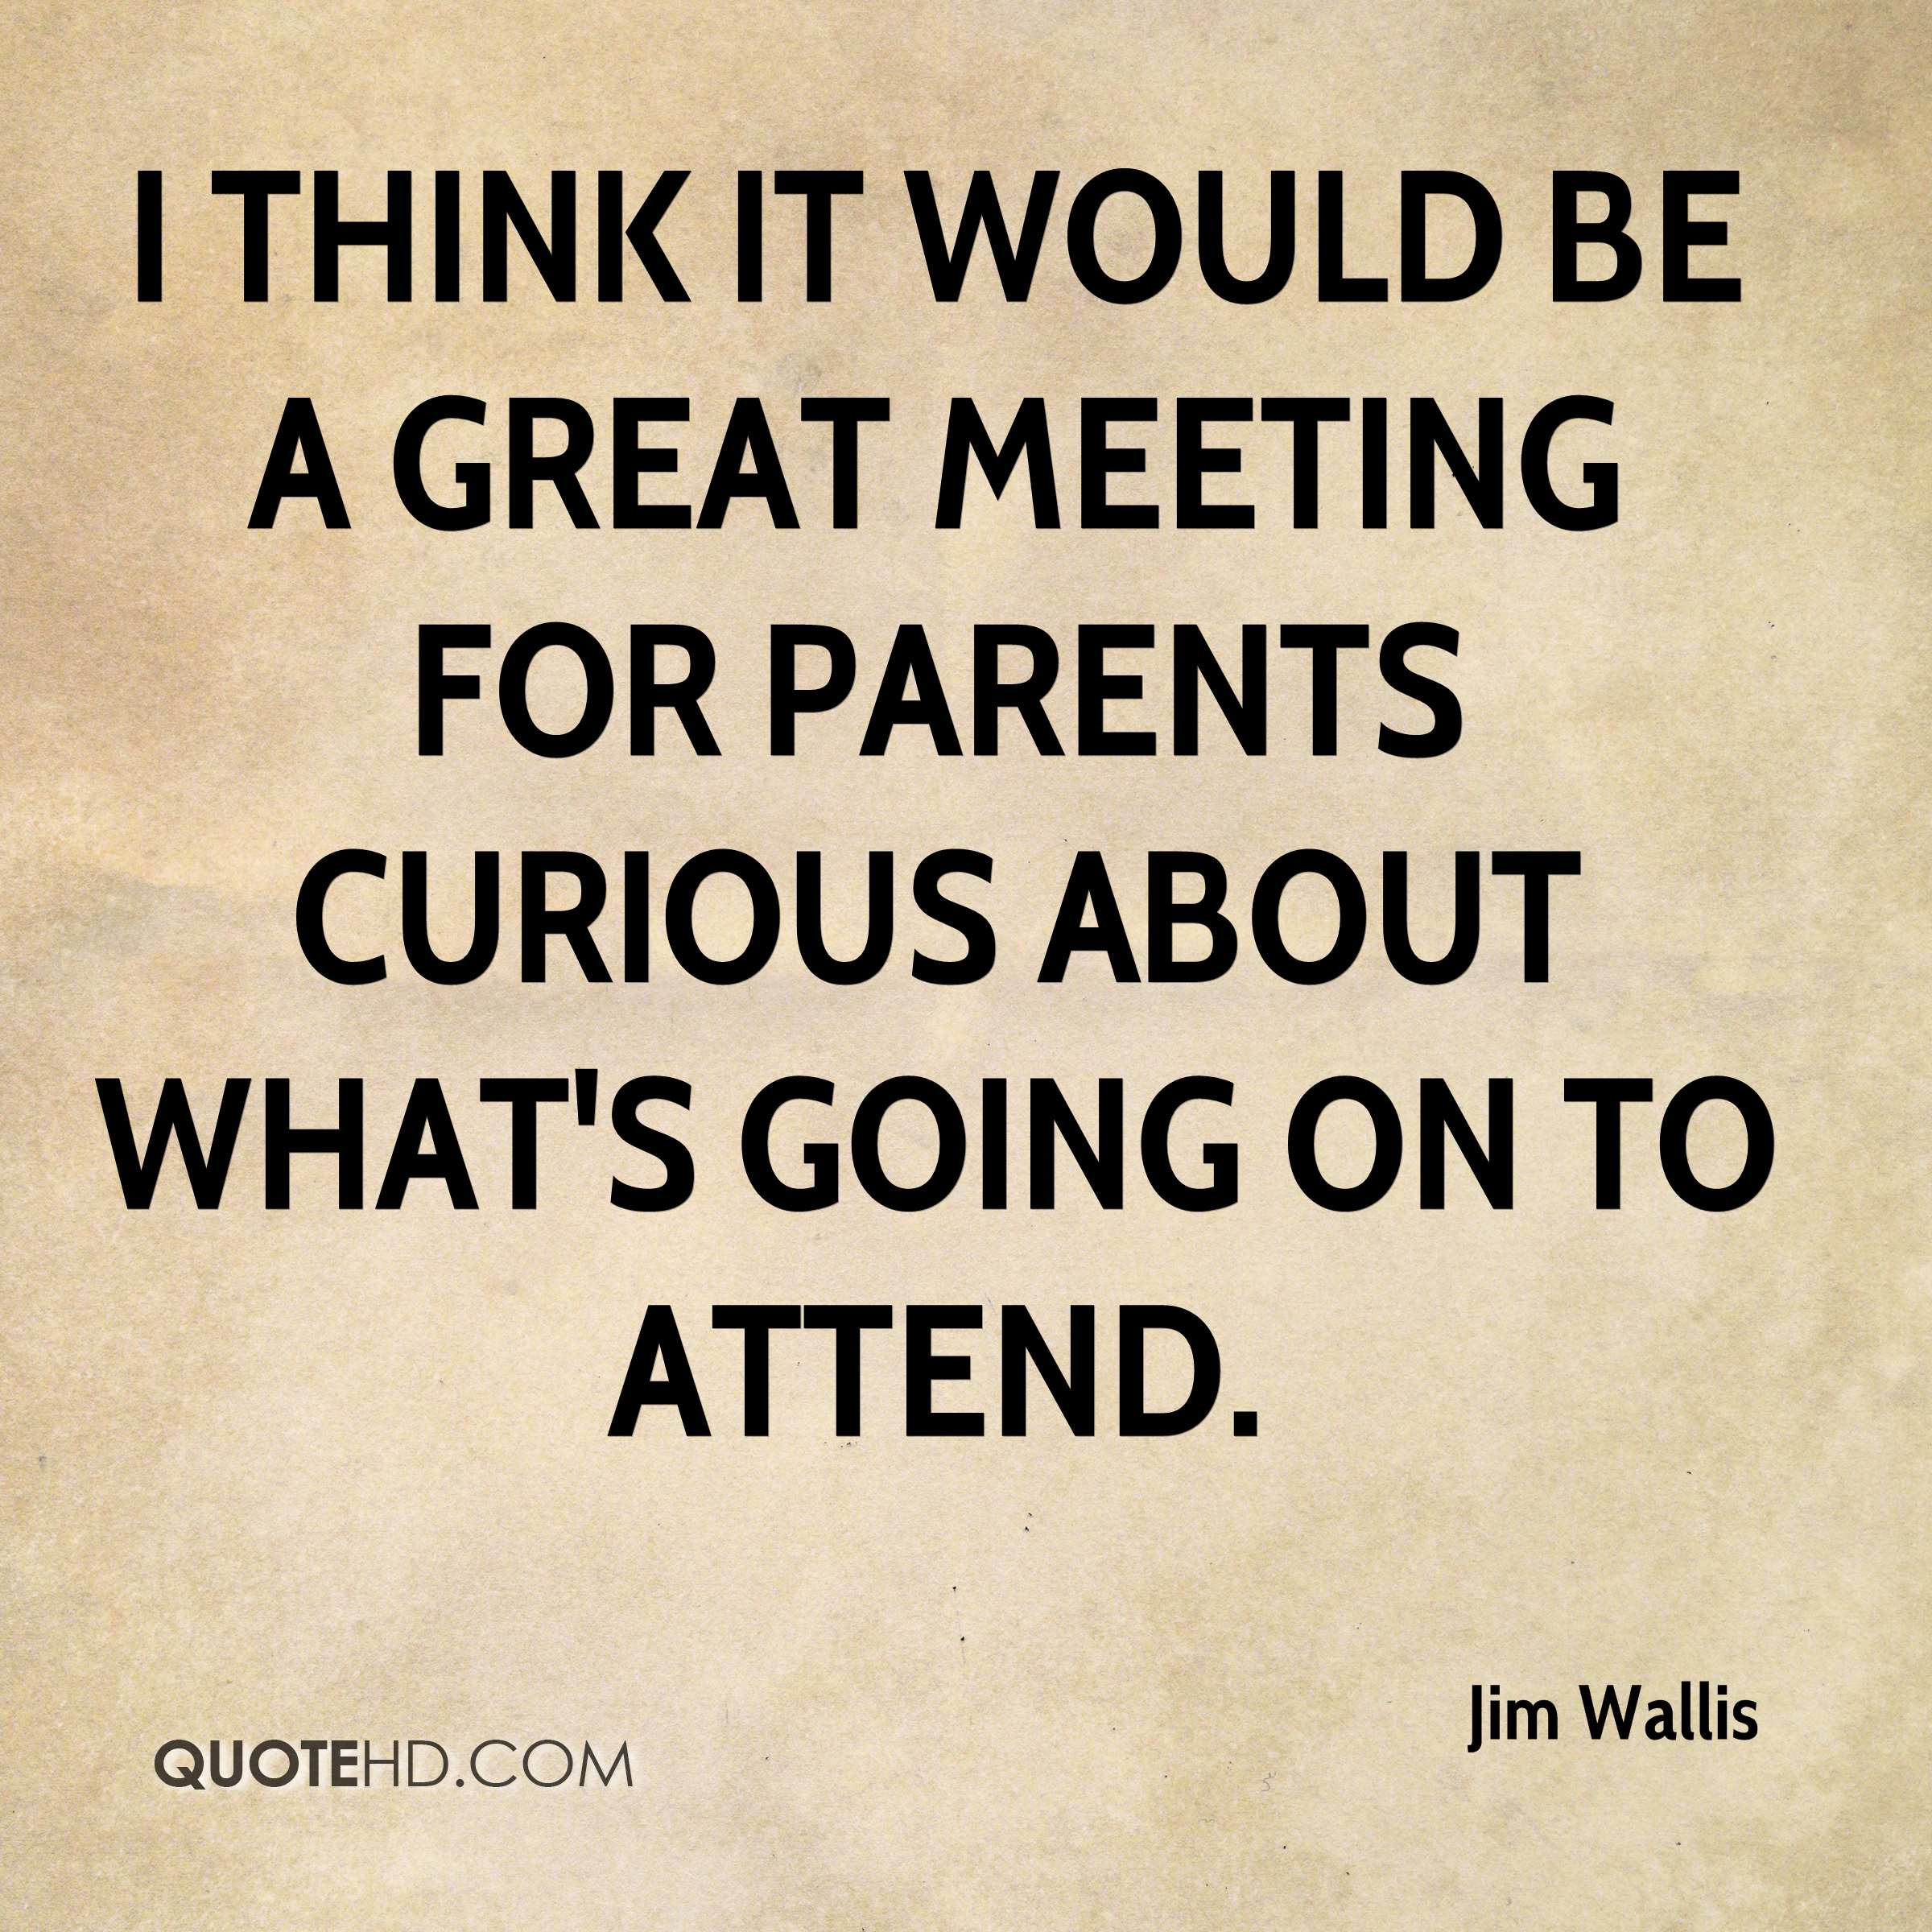 I think it would be a great meeting for parents curious about what's going on to attend.